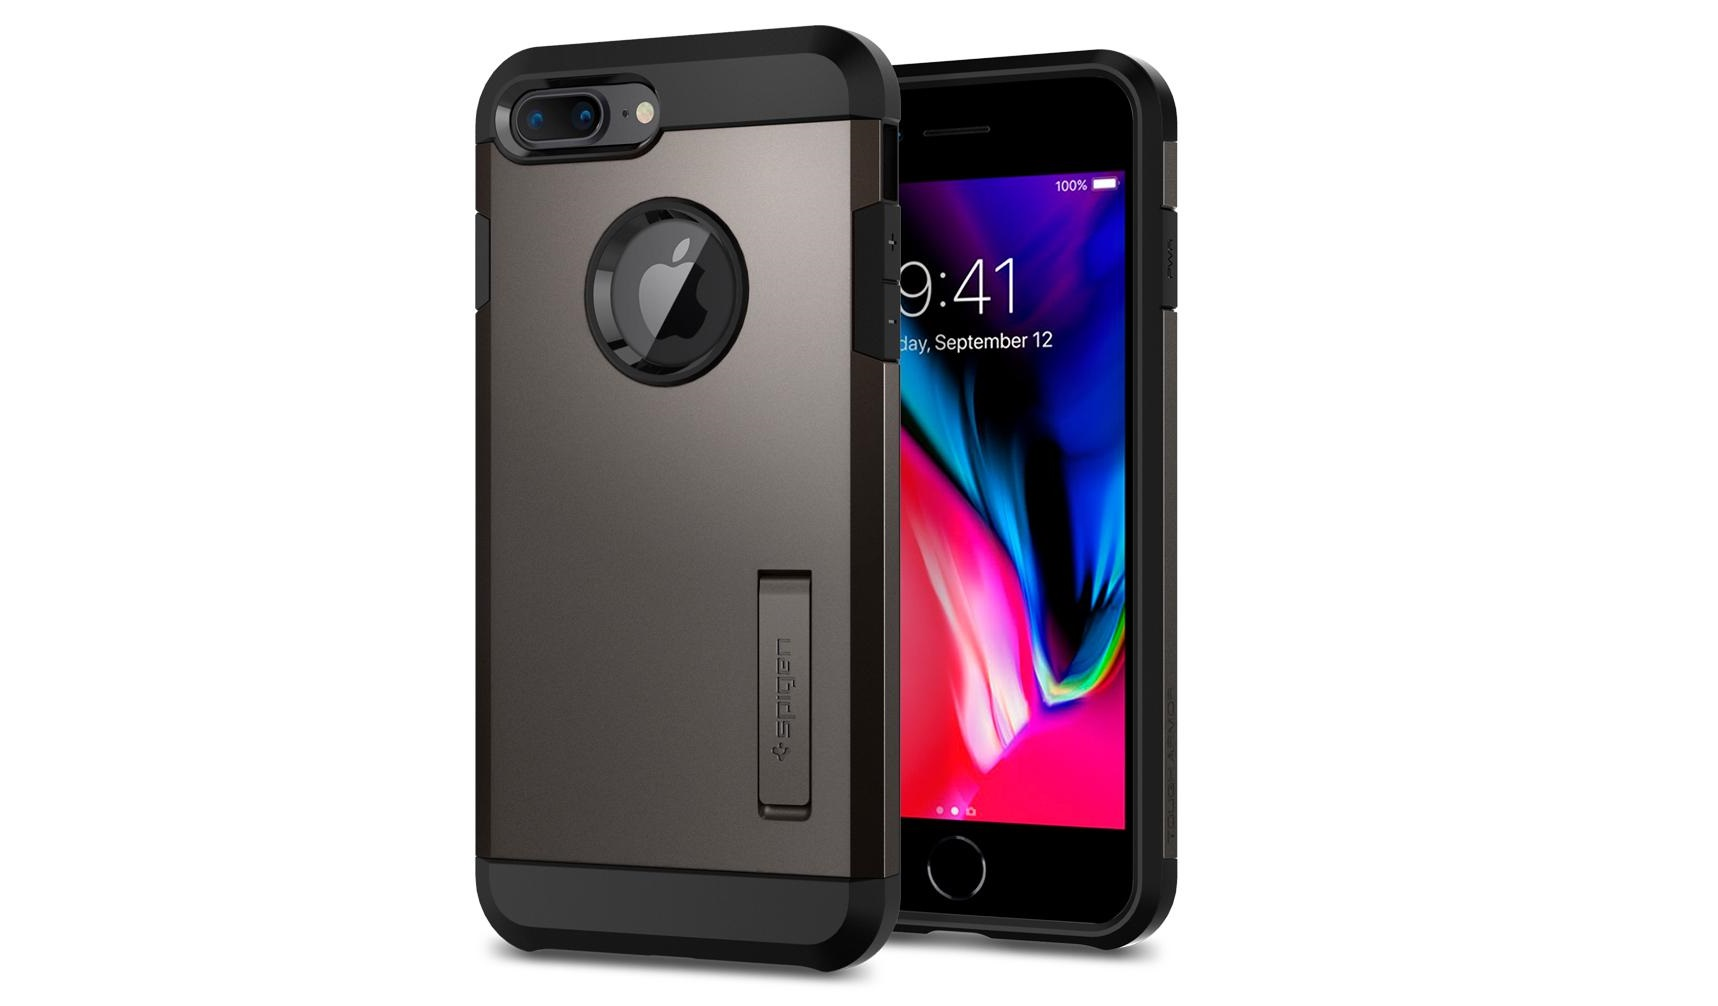 TpZb2ALZfkkhRb83BNakpg - The best iPhone 7 Plus cases